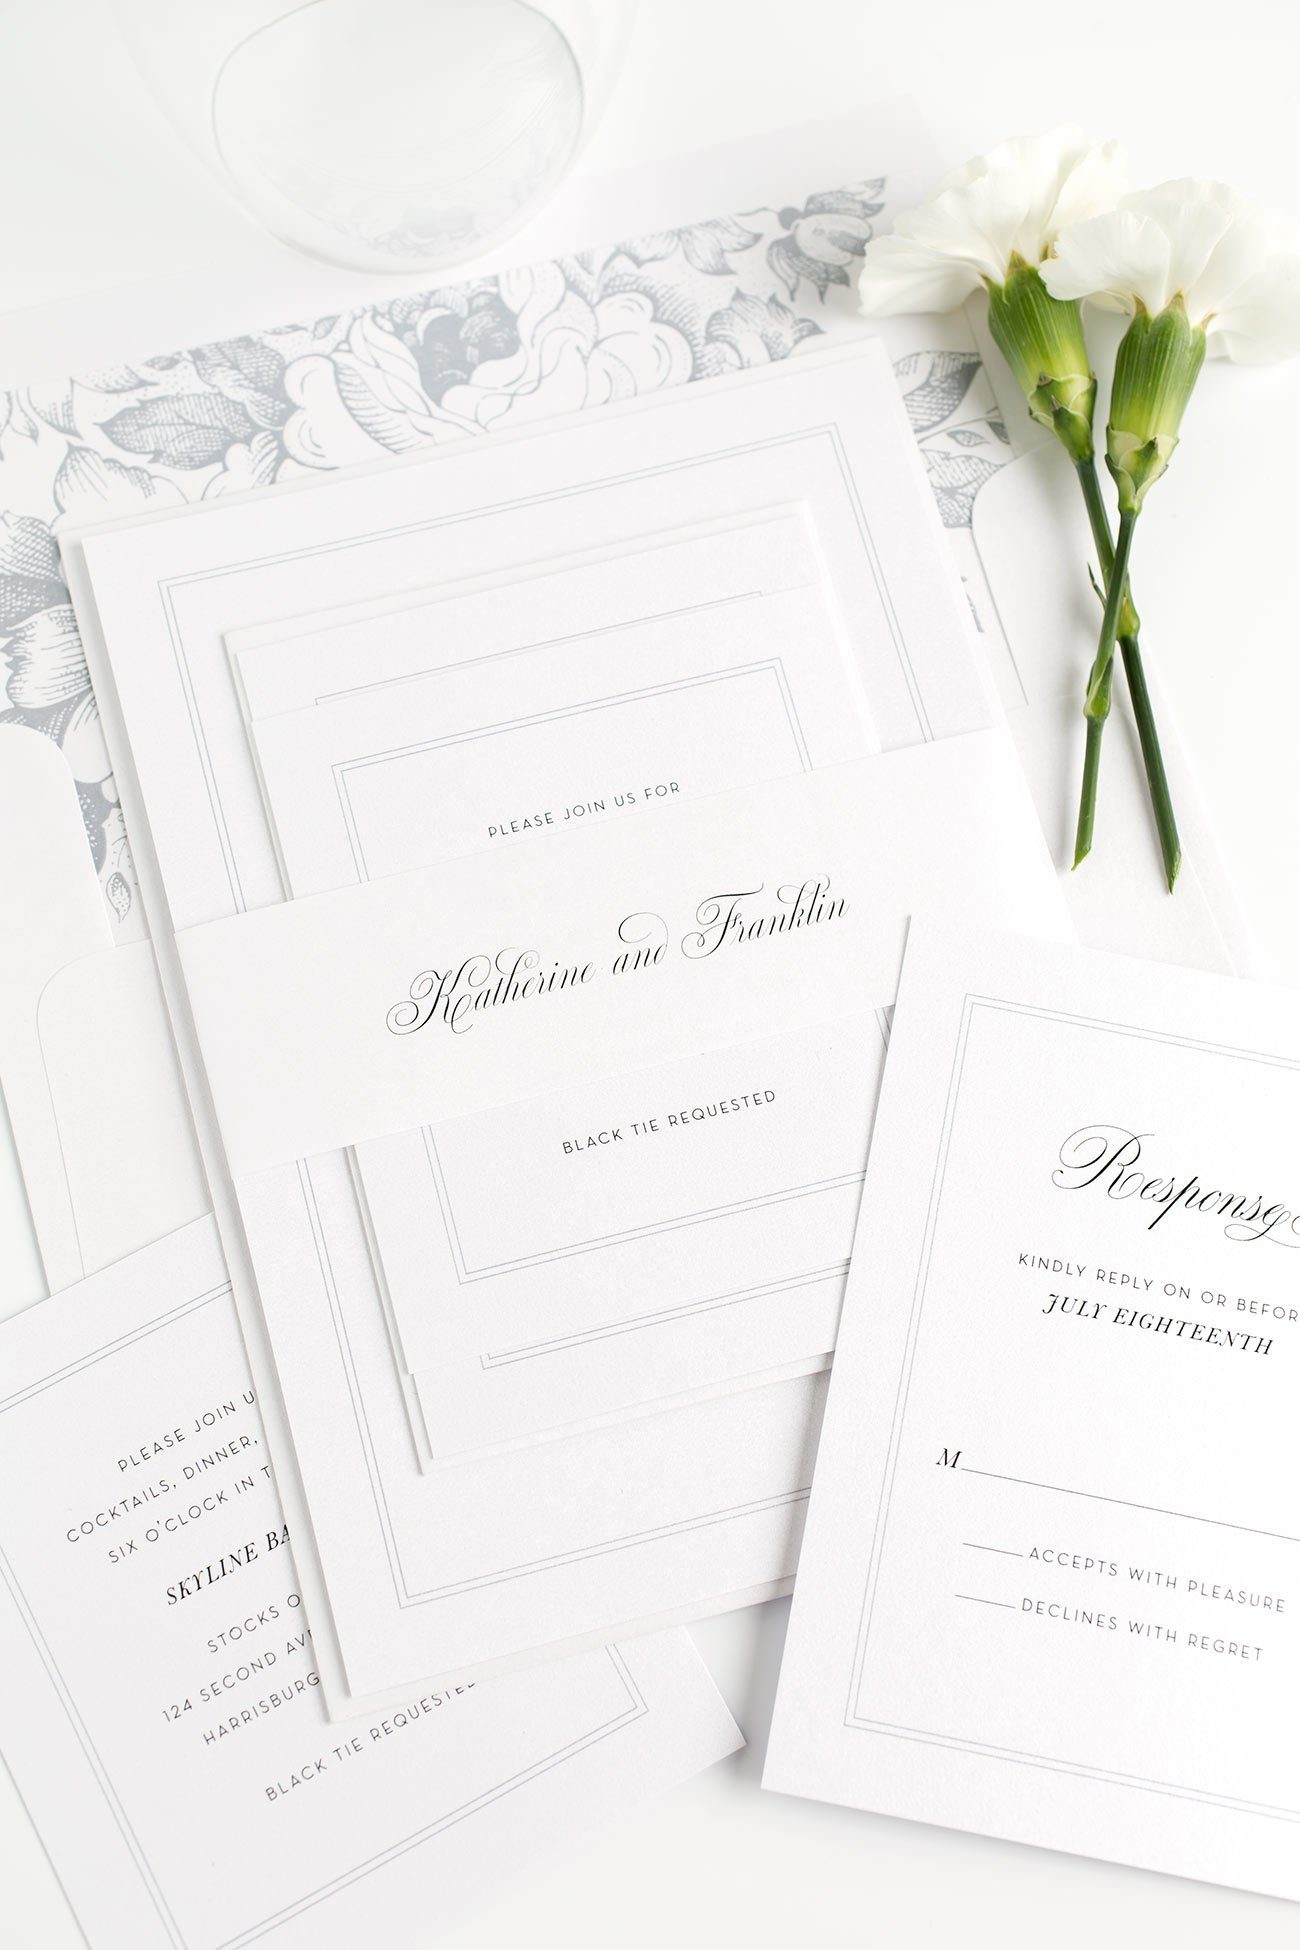 Classic Wedding Invitations in Dove Gray with a Floral Envelope Liner